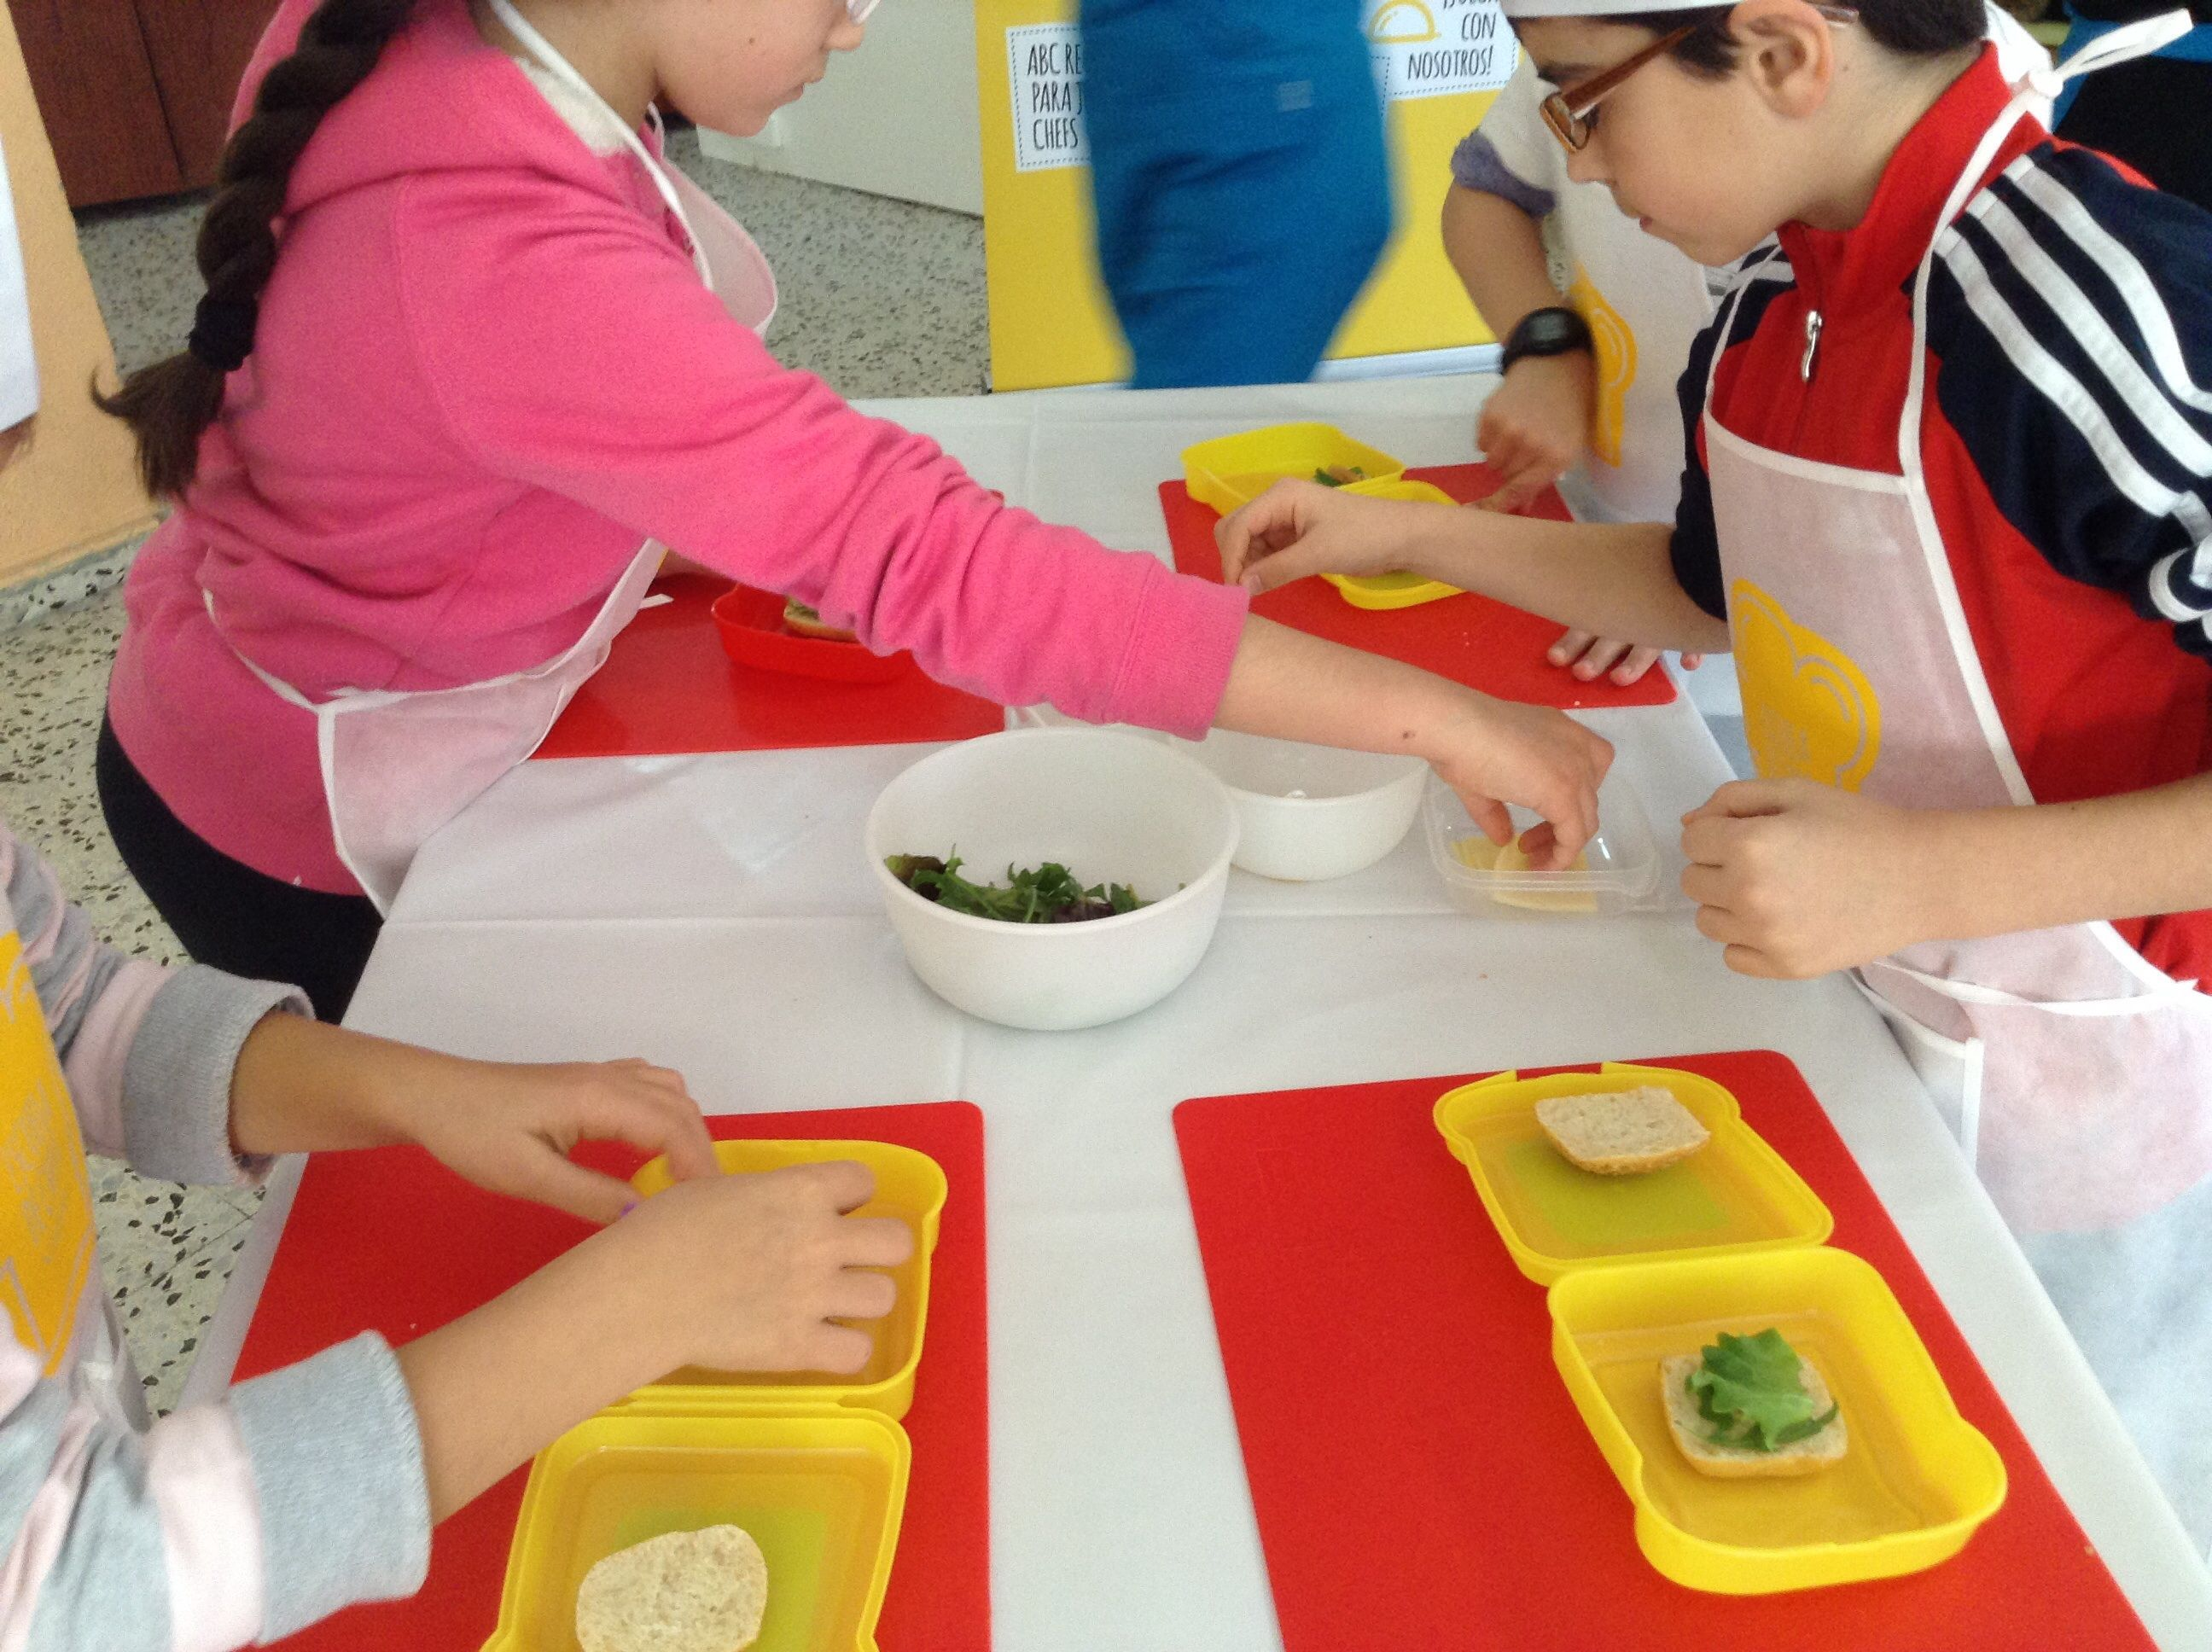 Learning Cooking With For Kids Image By Christy Assid